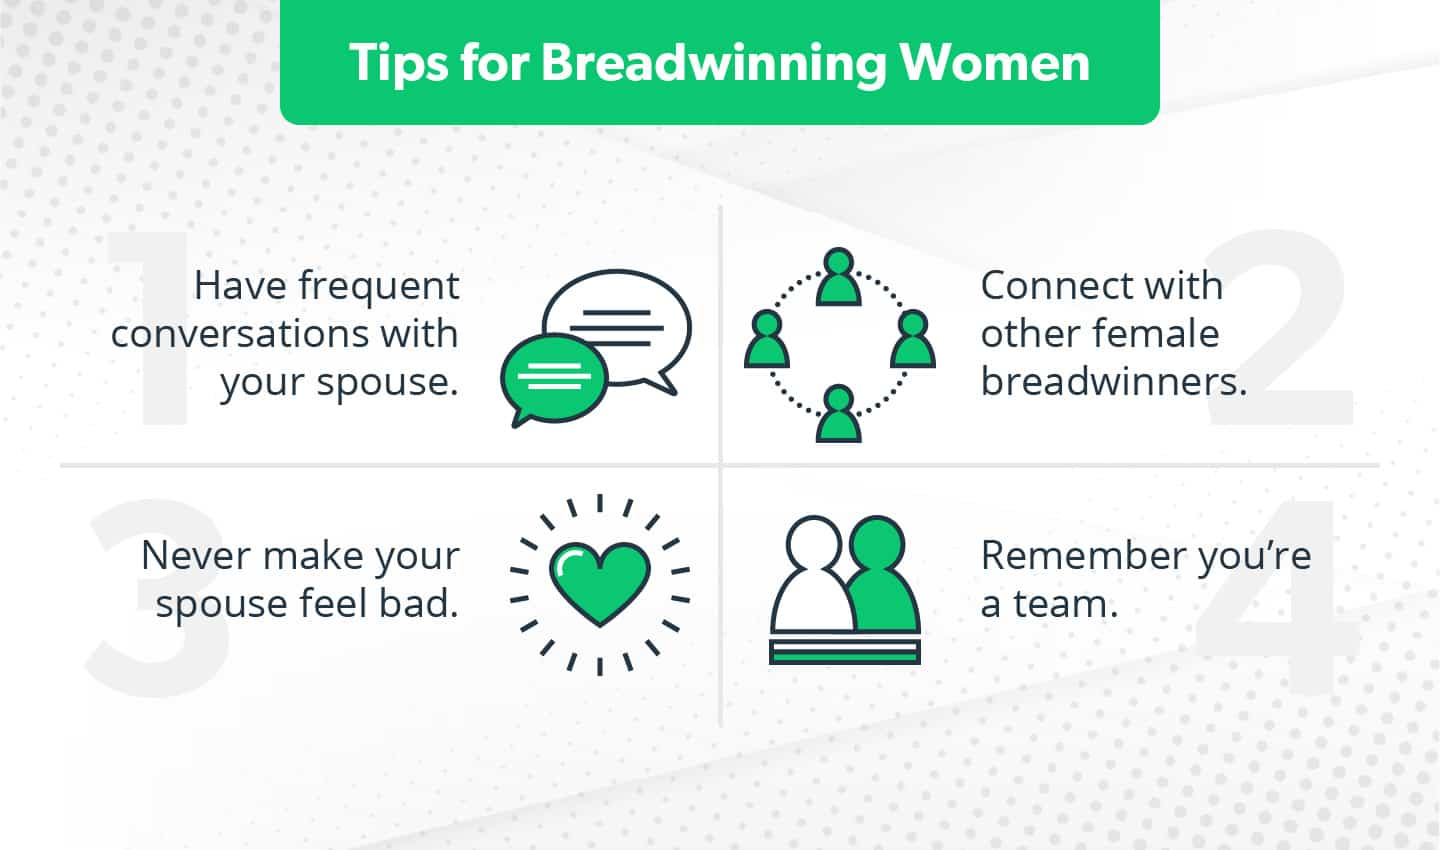 Tips for female breadwinners